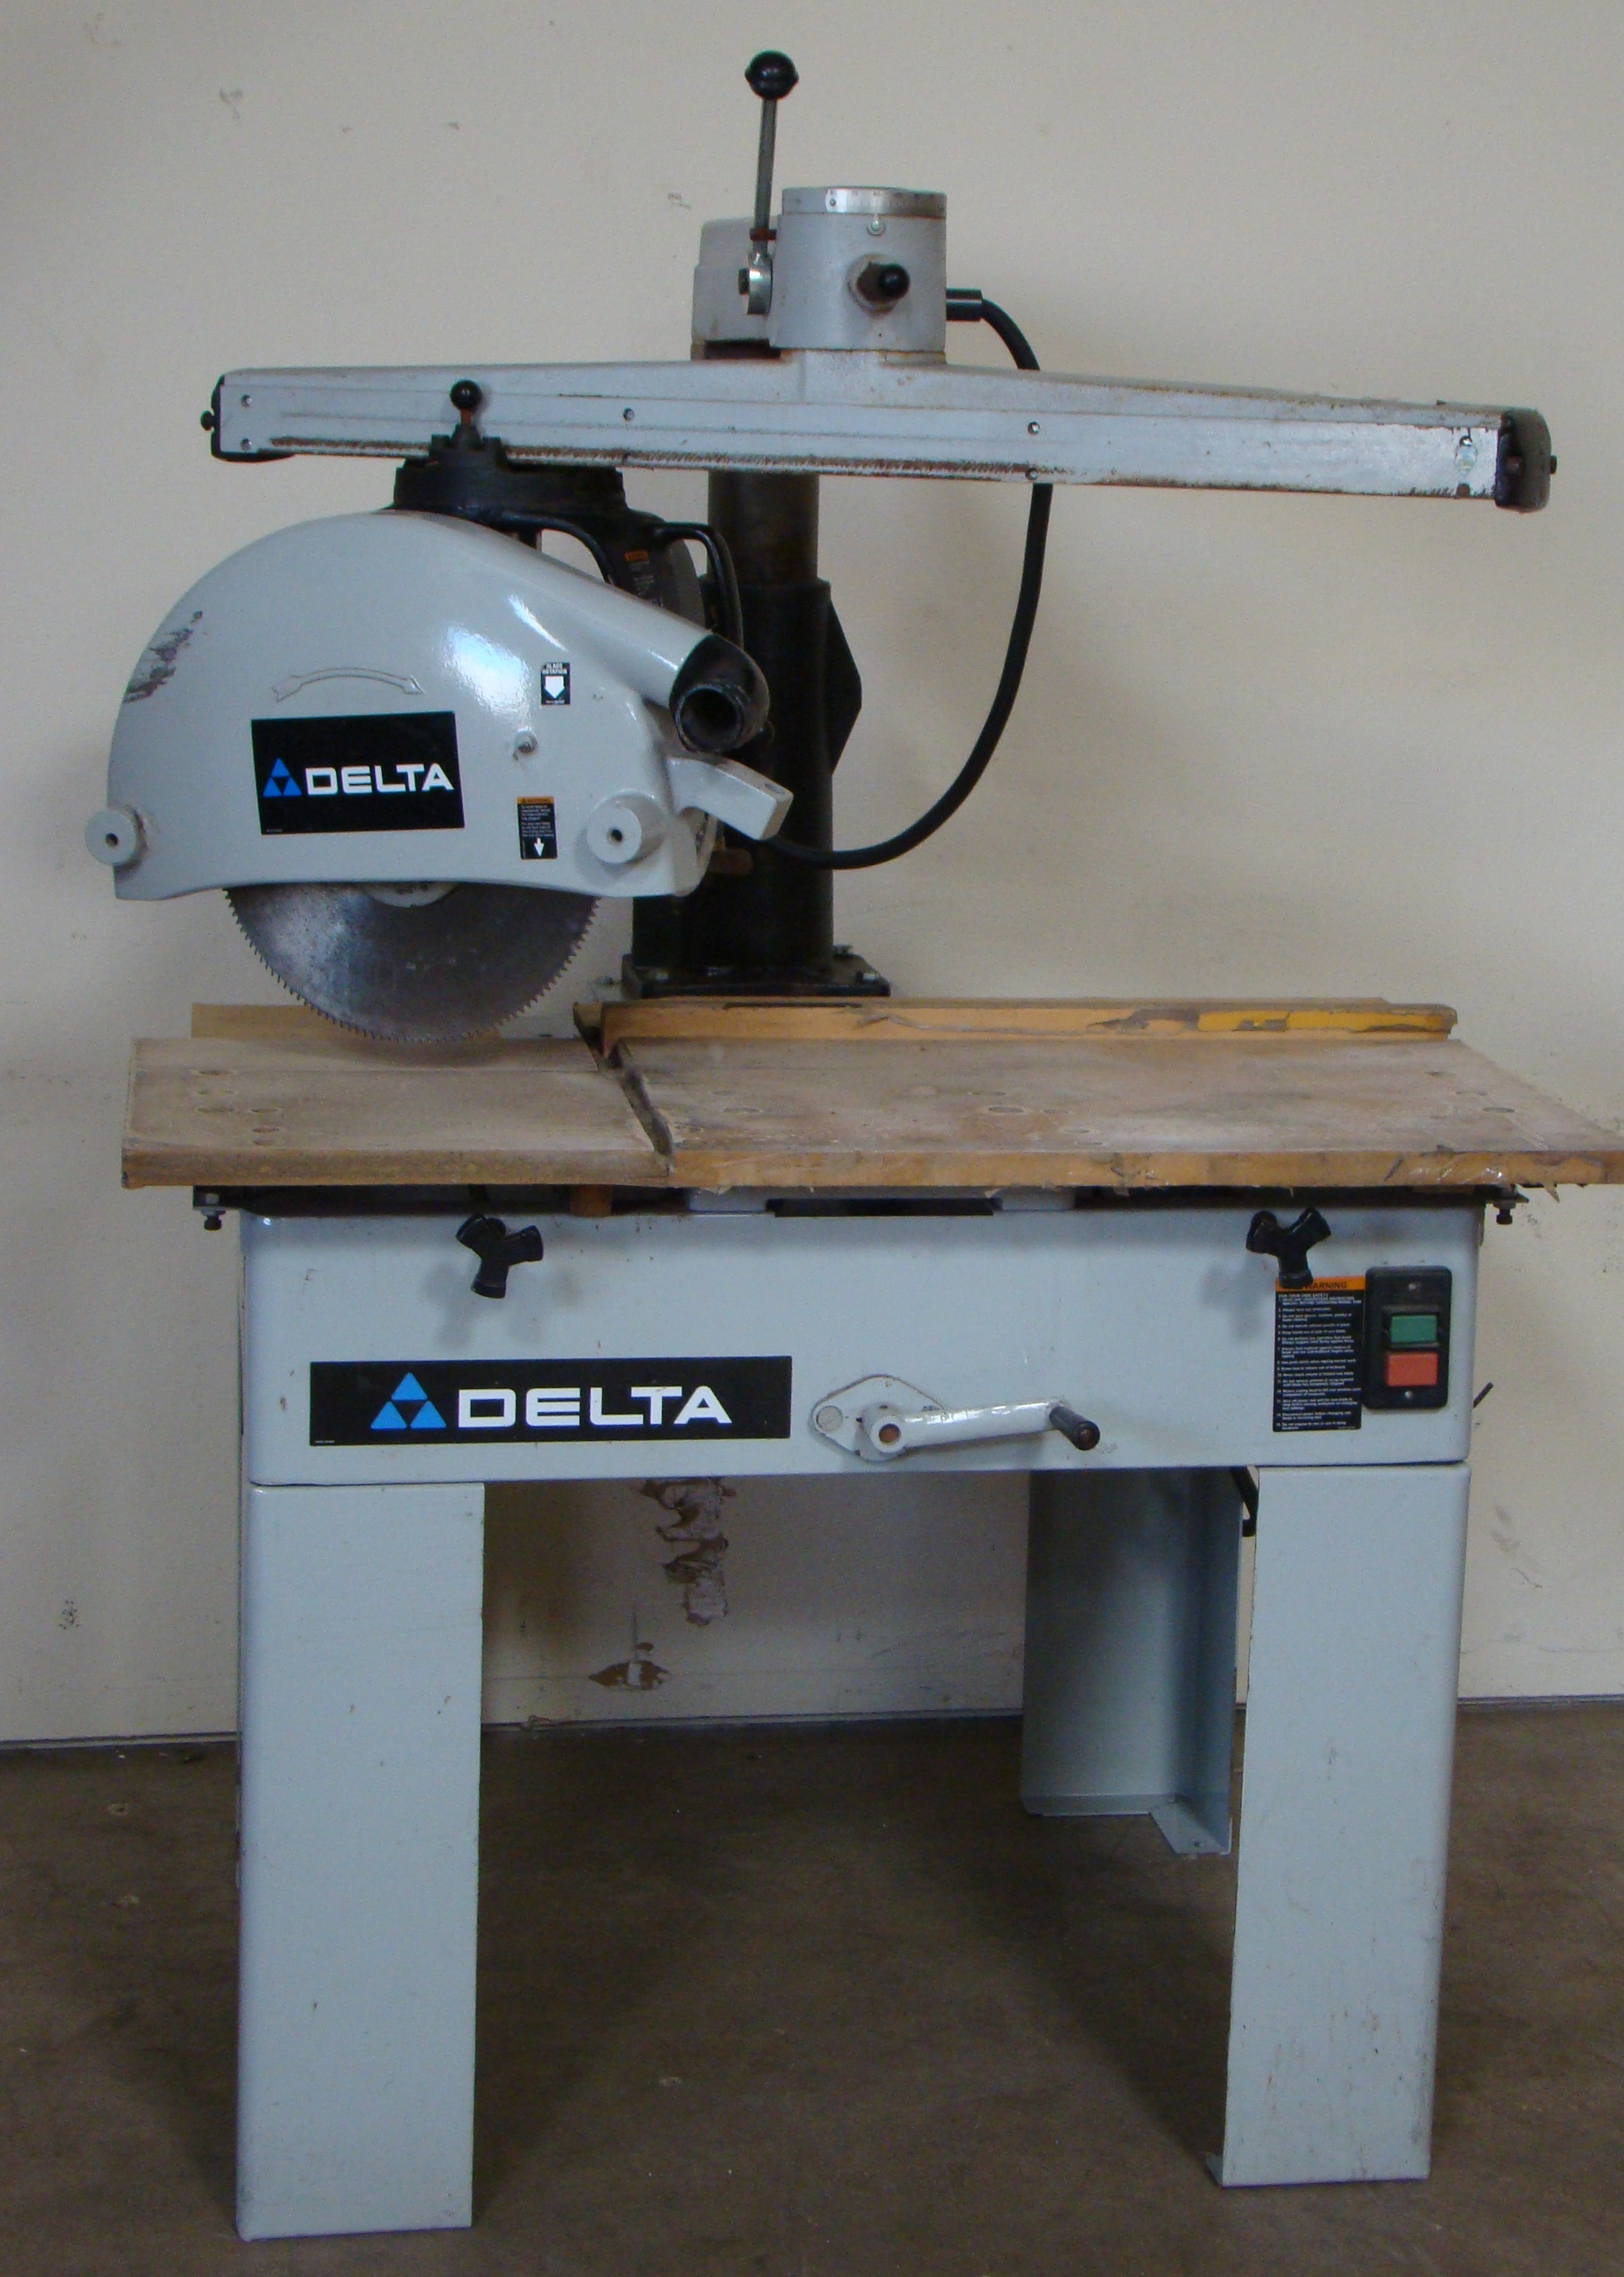 "Delta 33-421 18"" Radial Arm Saw 7.5 HP 230/460 Volt 3PH - Image 2 of 7"